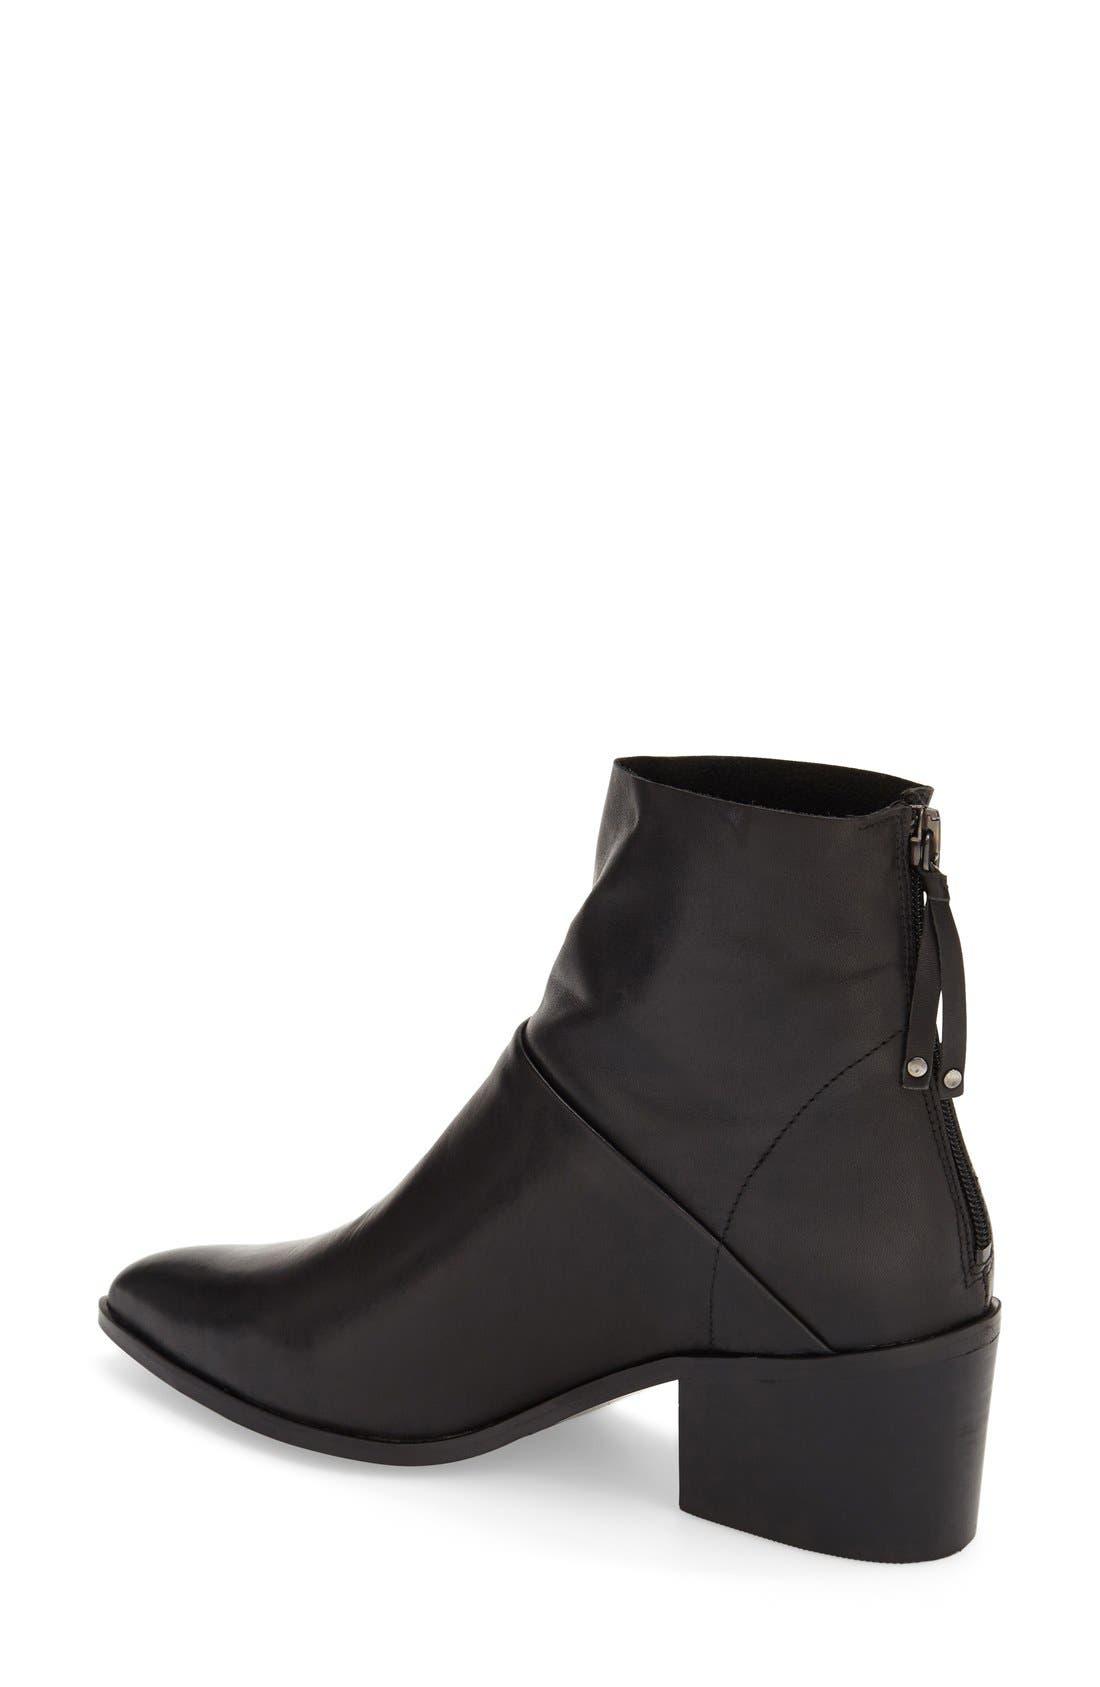 'Midnight' Pointy Toe Boot,                             Alternate thumbnail 2, color,                             Black